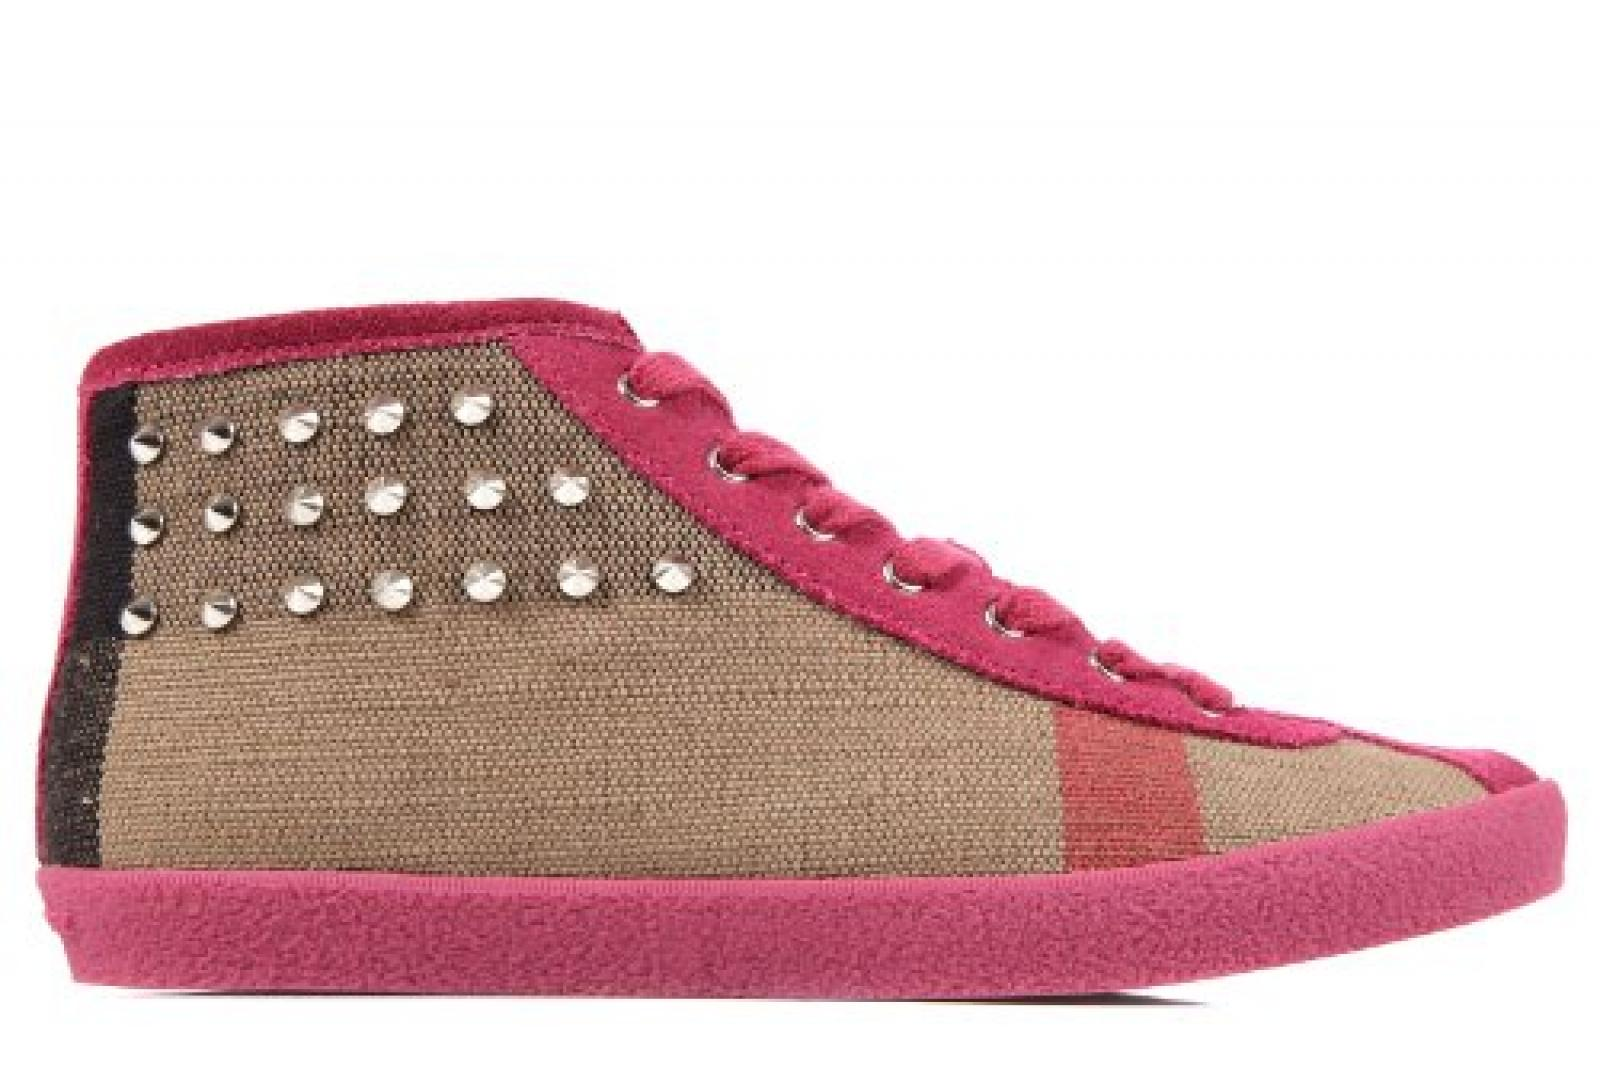 Burberry Damenschuhe Damen Leder Schuhe High Sneakers eastbury fuxia